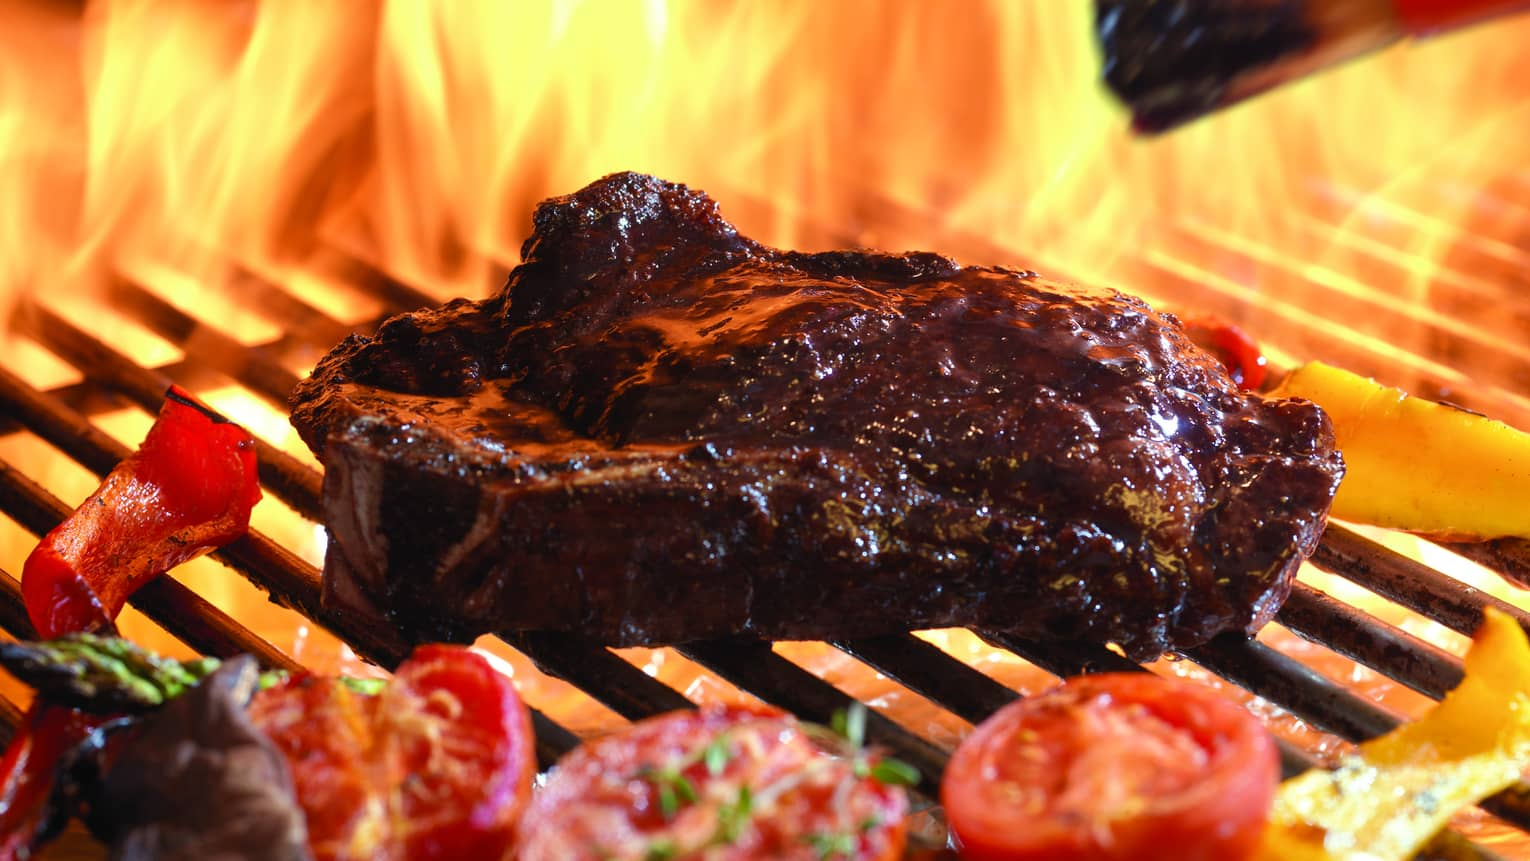 Close-up of juicy steak, tomato and pepper halves on barbecue grill with flames